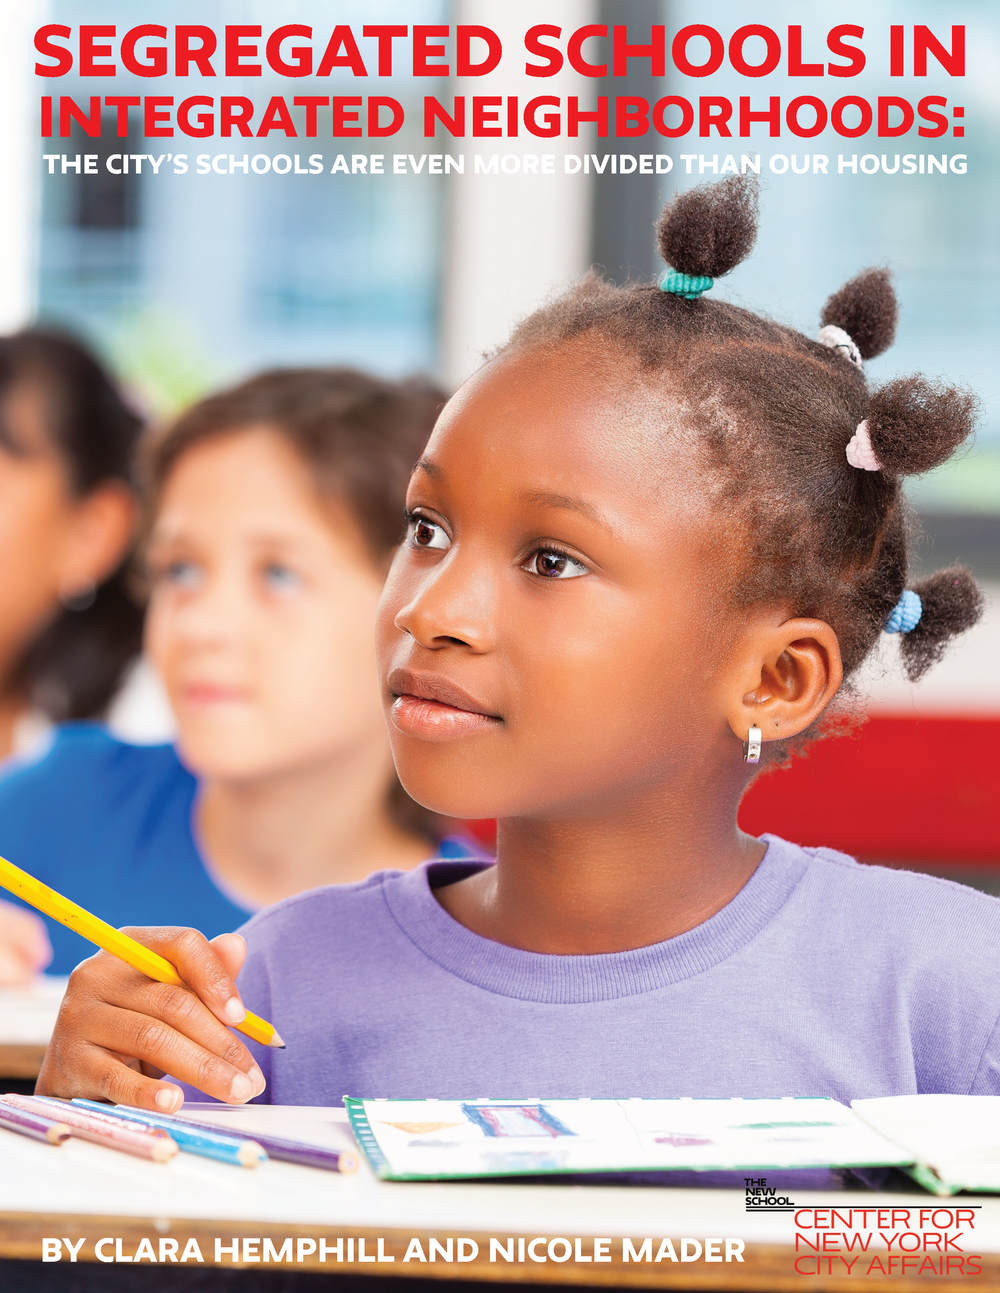 Segregated Schools in Integrated Neighborhoods — Center for New York City Affairs